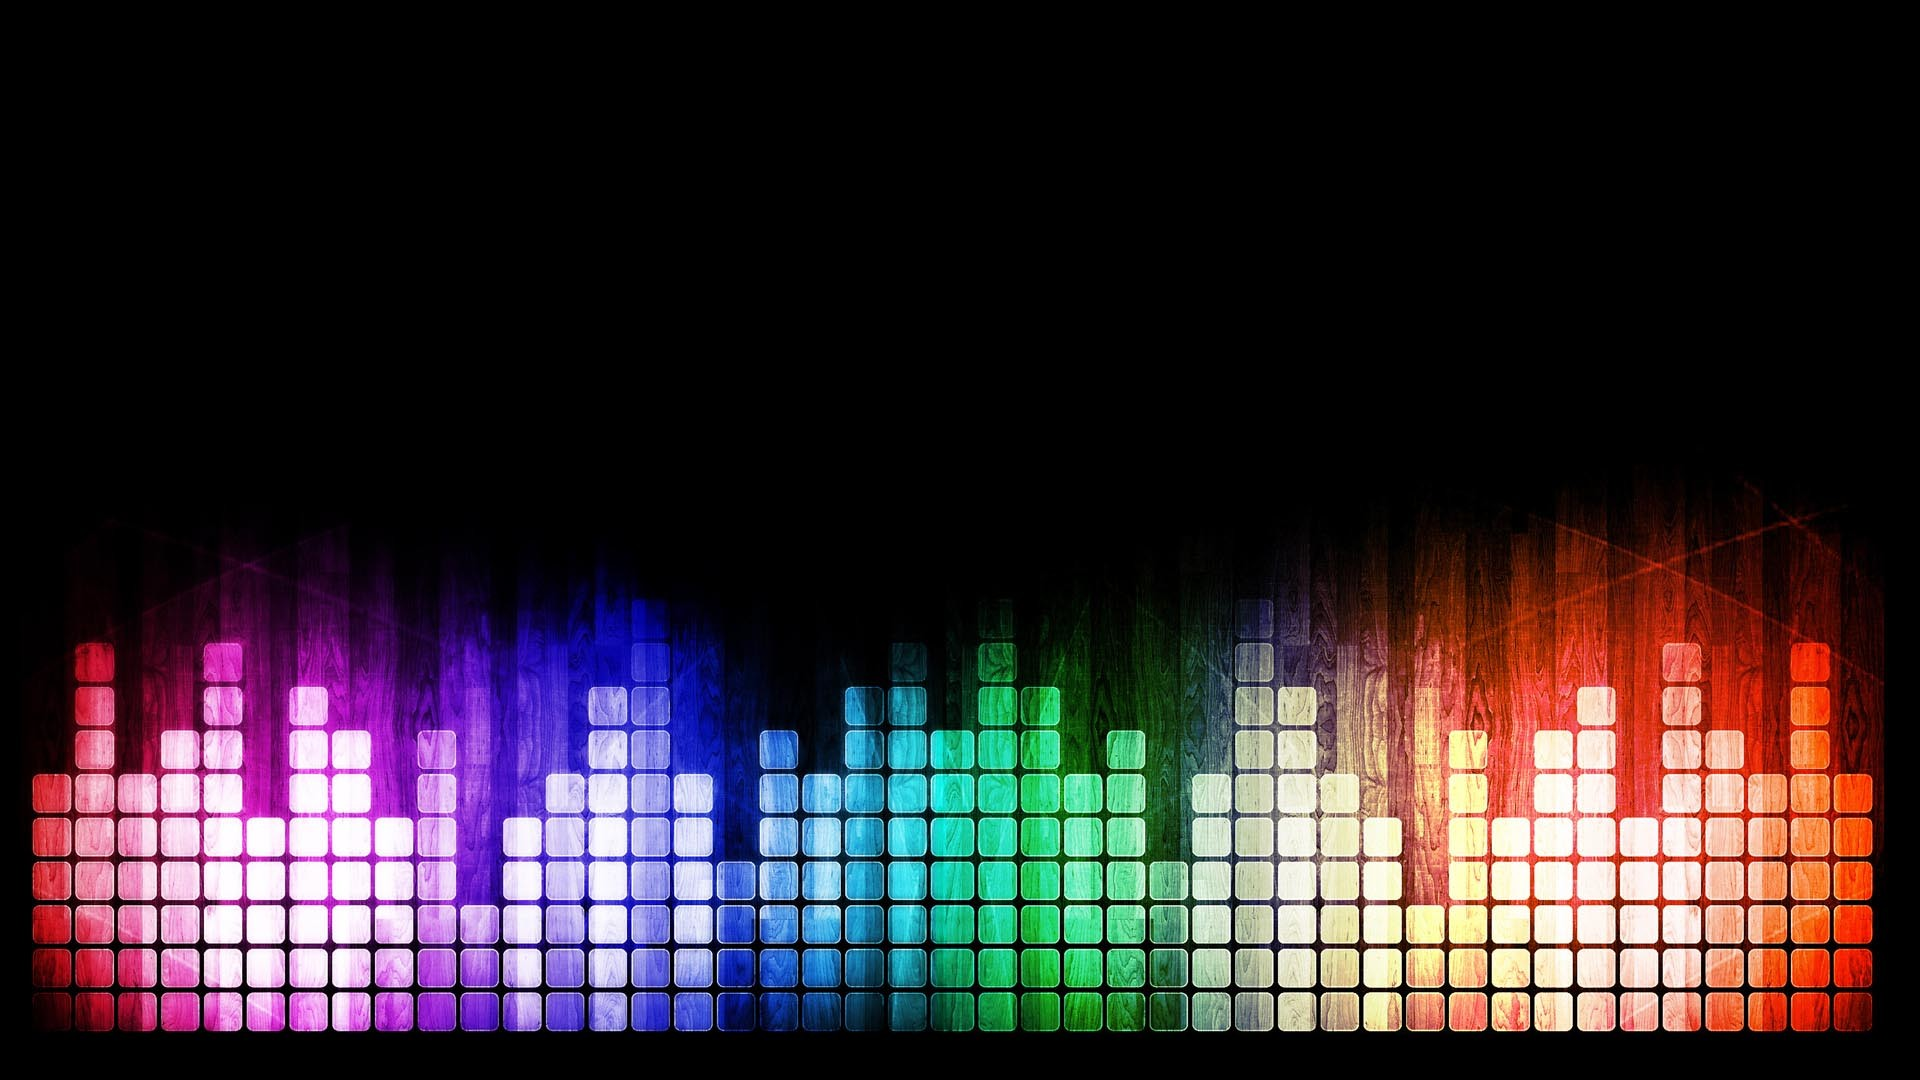 Download Cool Backgrounds Cool Musical Backgrounds 58 Pictures